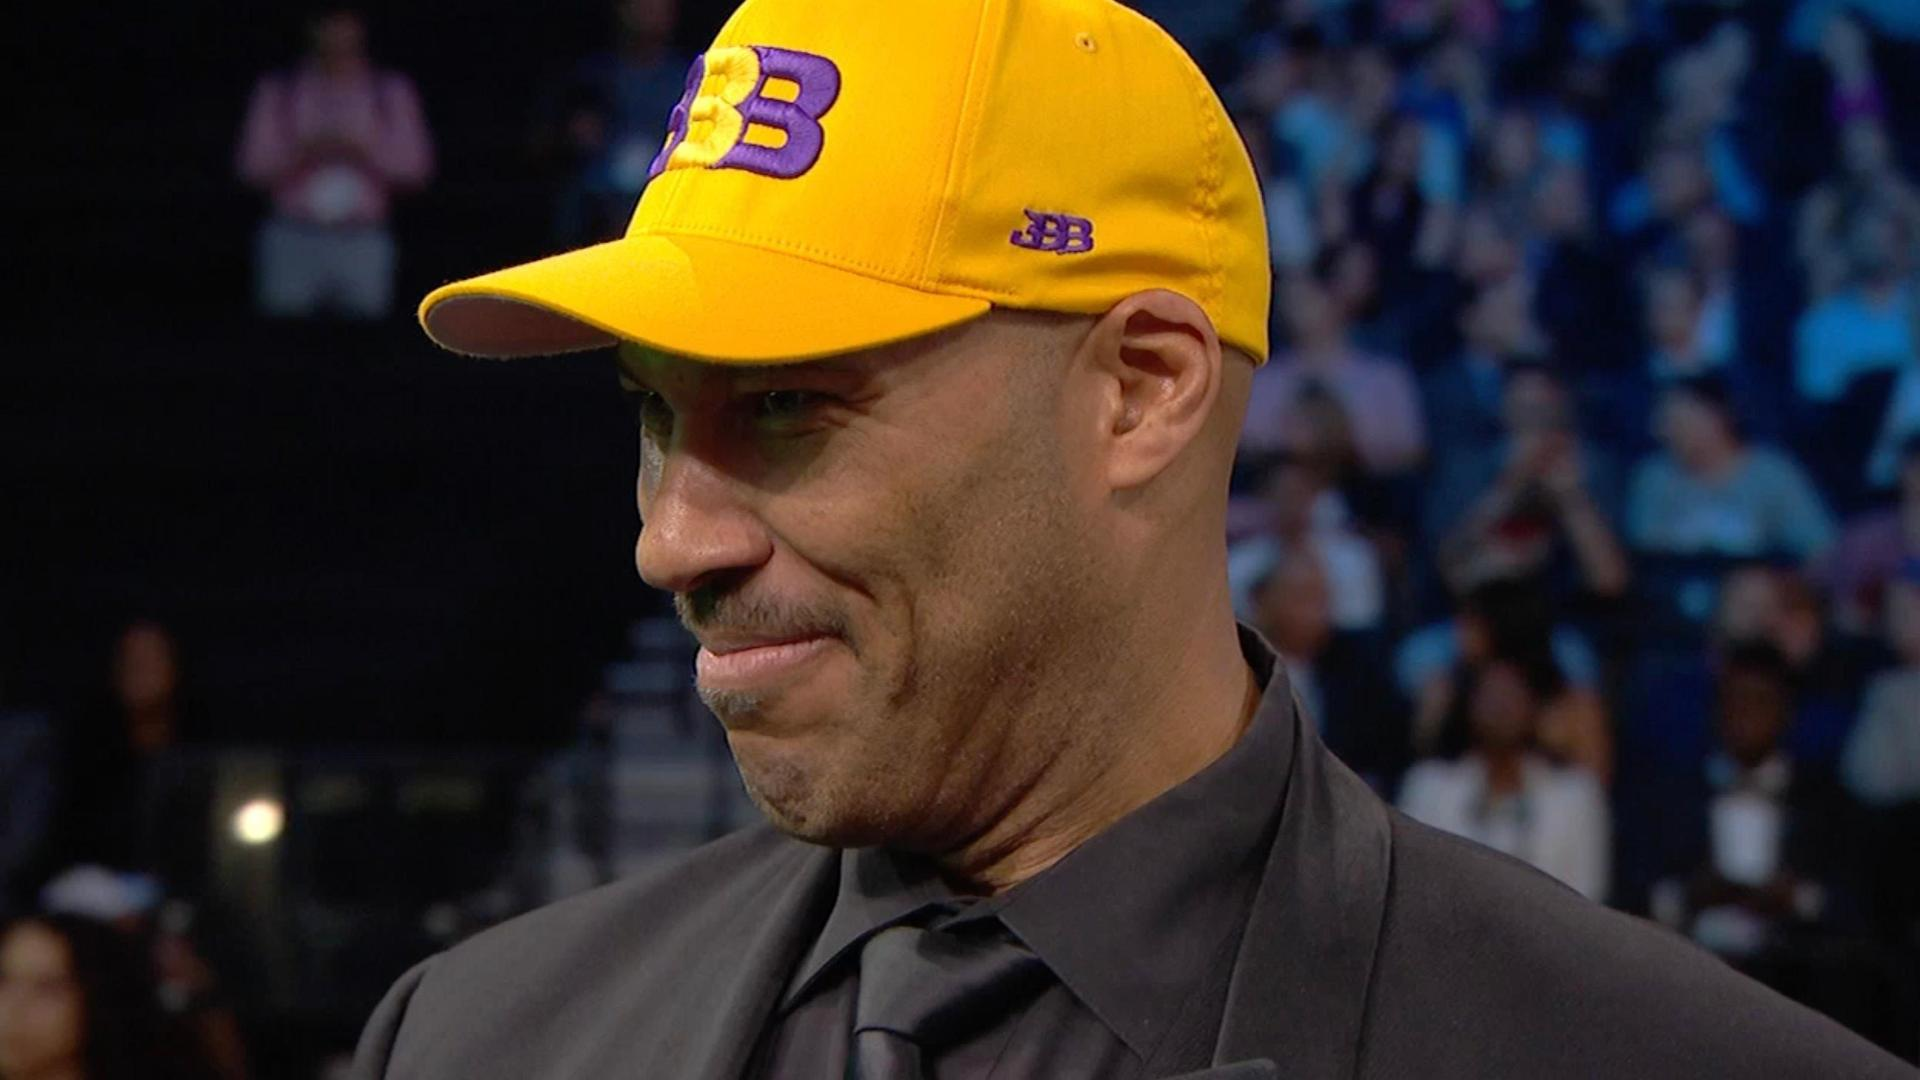 LaVar Ball: Always knew Lonzo would be a Laker